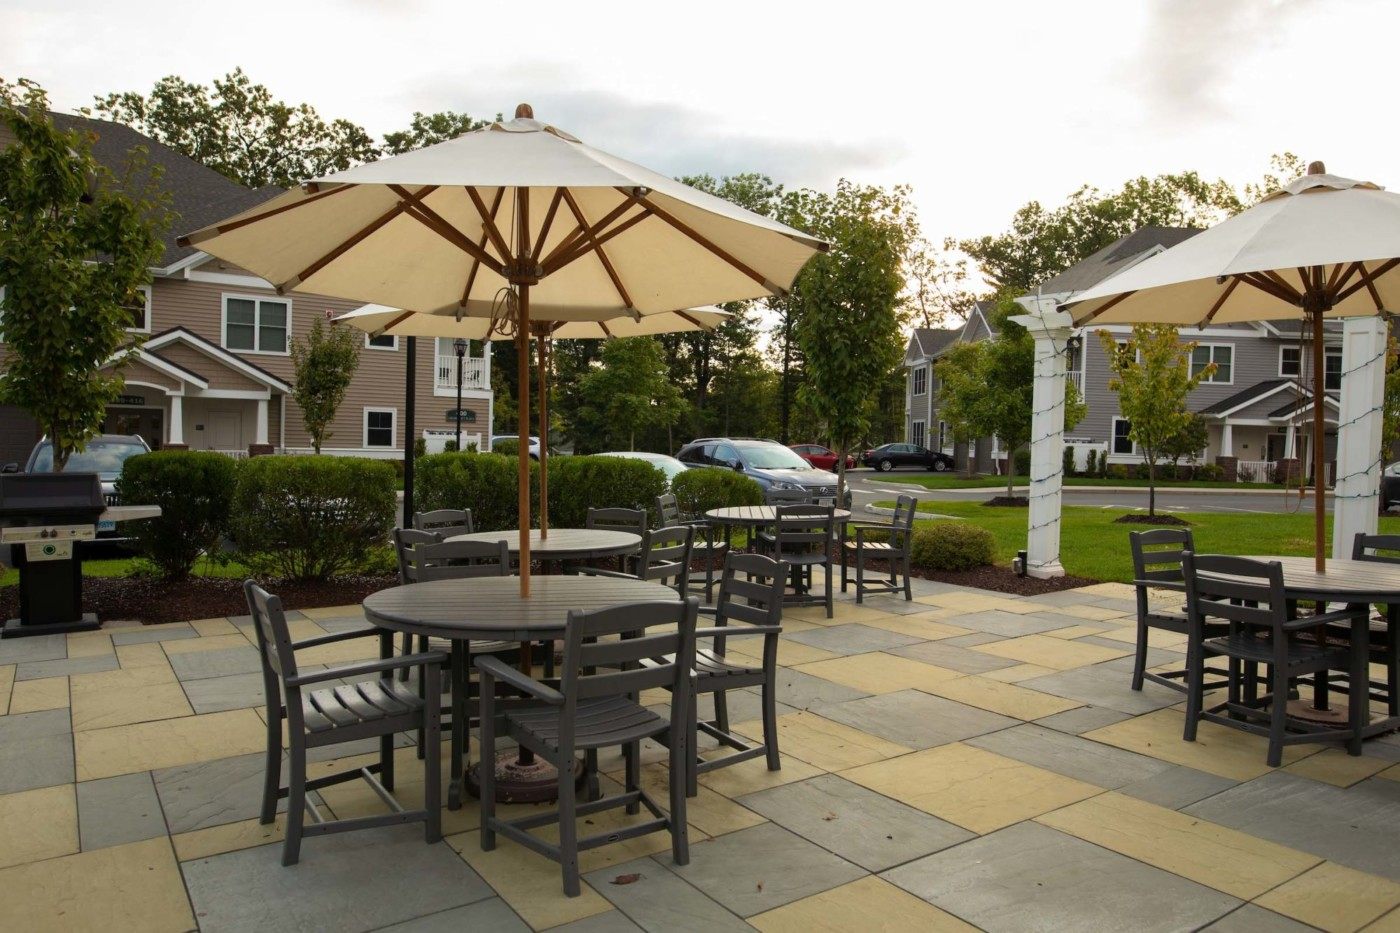 Patio with tables and chairs under umbrellas